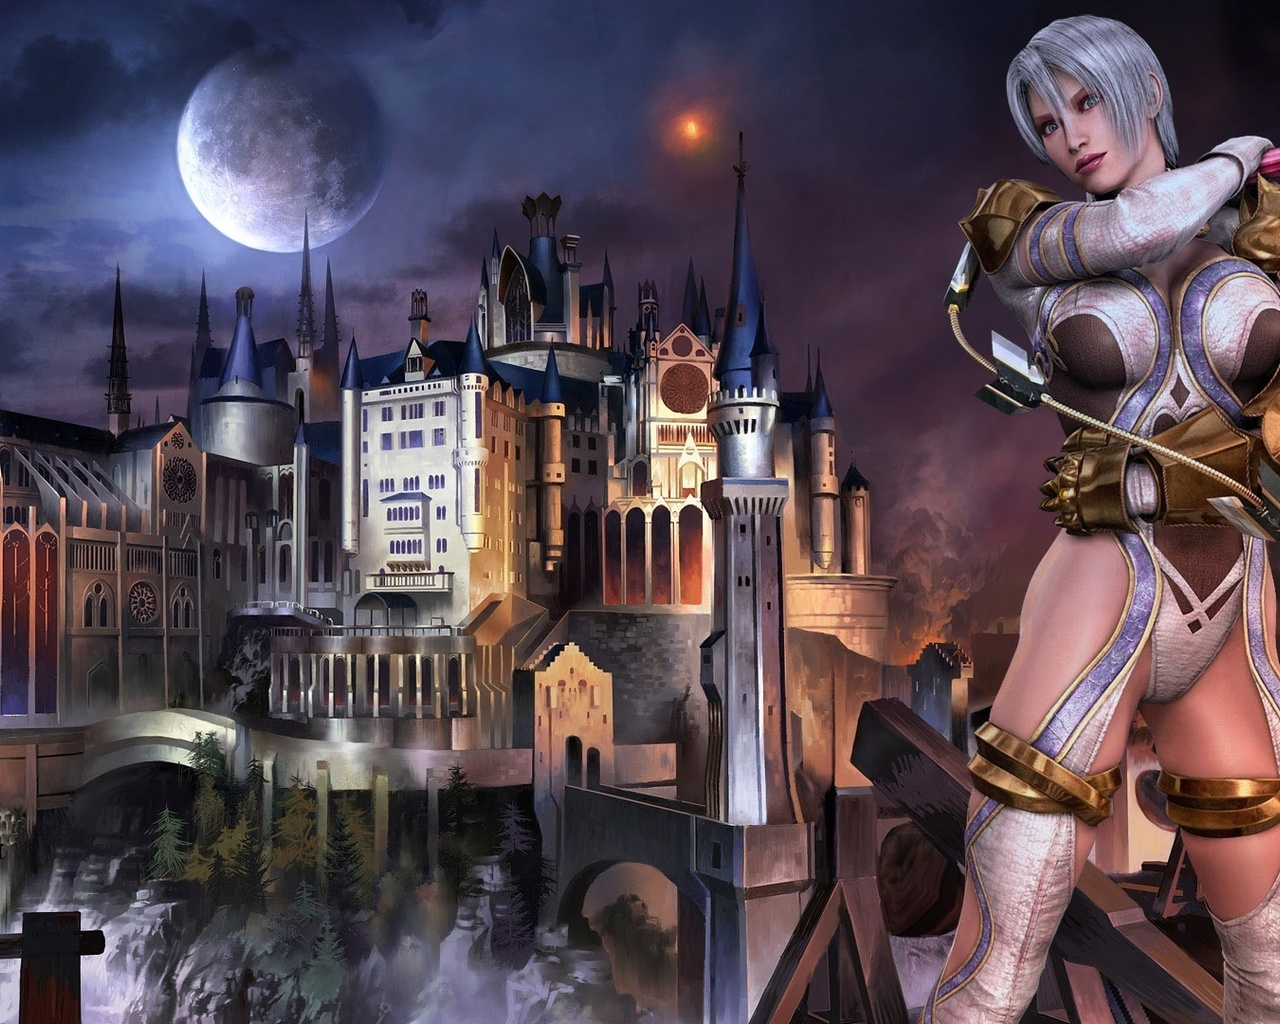 wallpapers woman warrior, weapons, castle, fantasy, photo 1280x1024 on